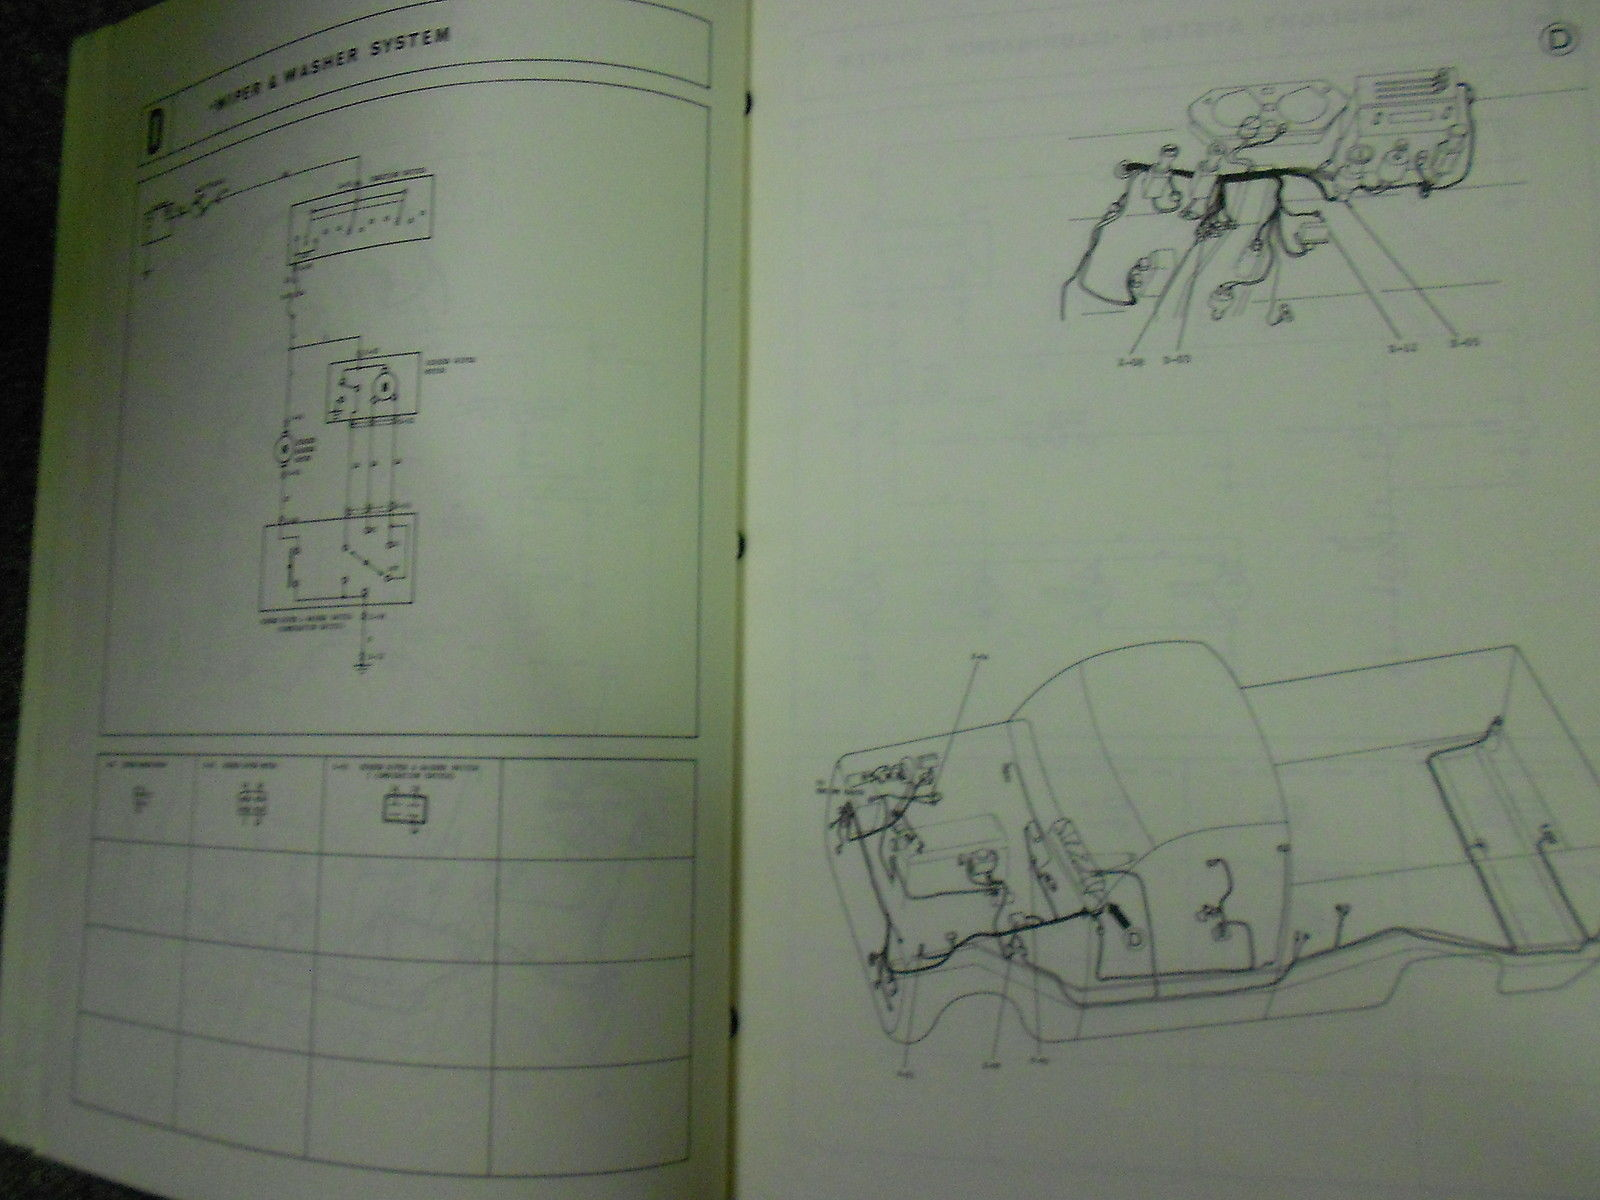 hight resolution of 1977 mazda b 1800 truck electrical wiring diagram service repair shop manual 77